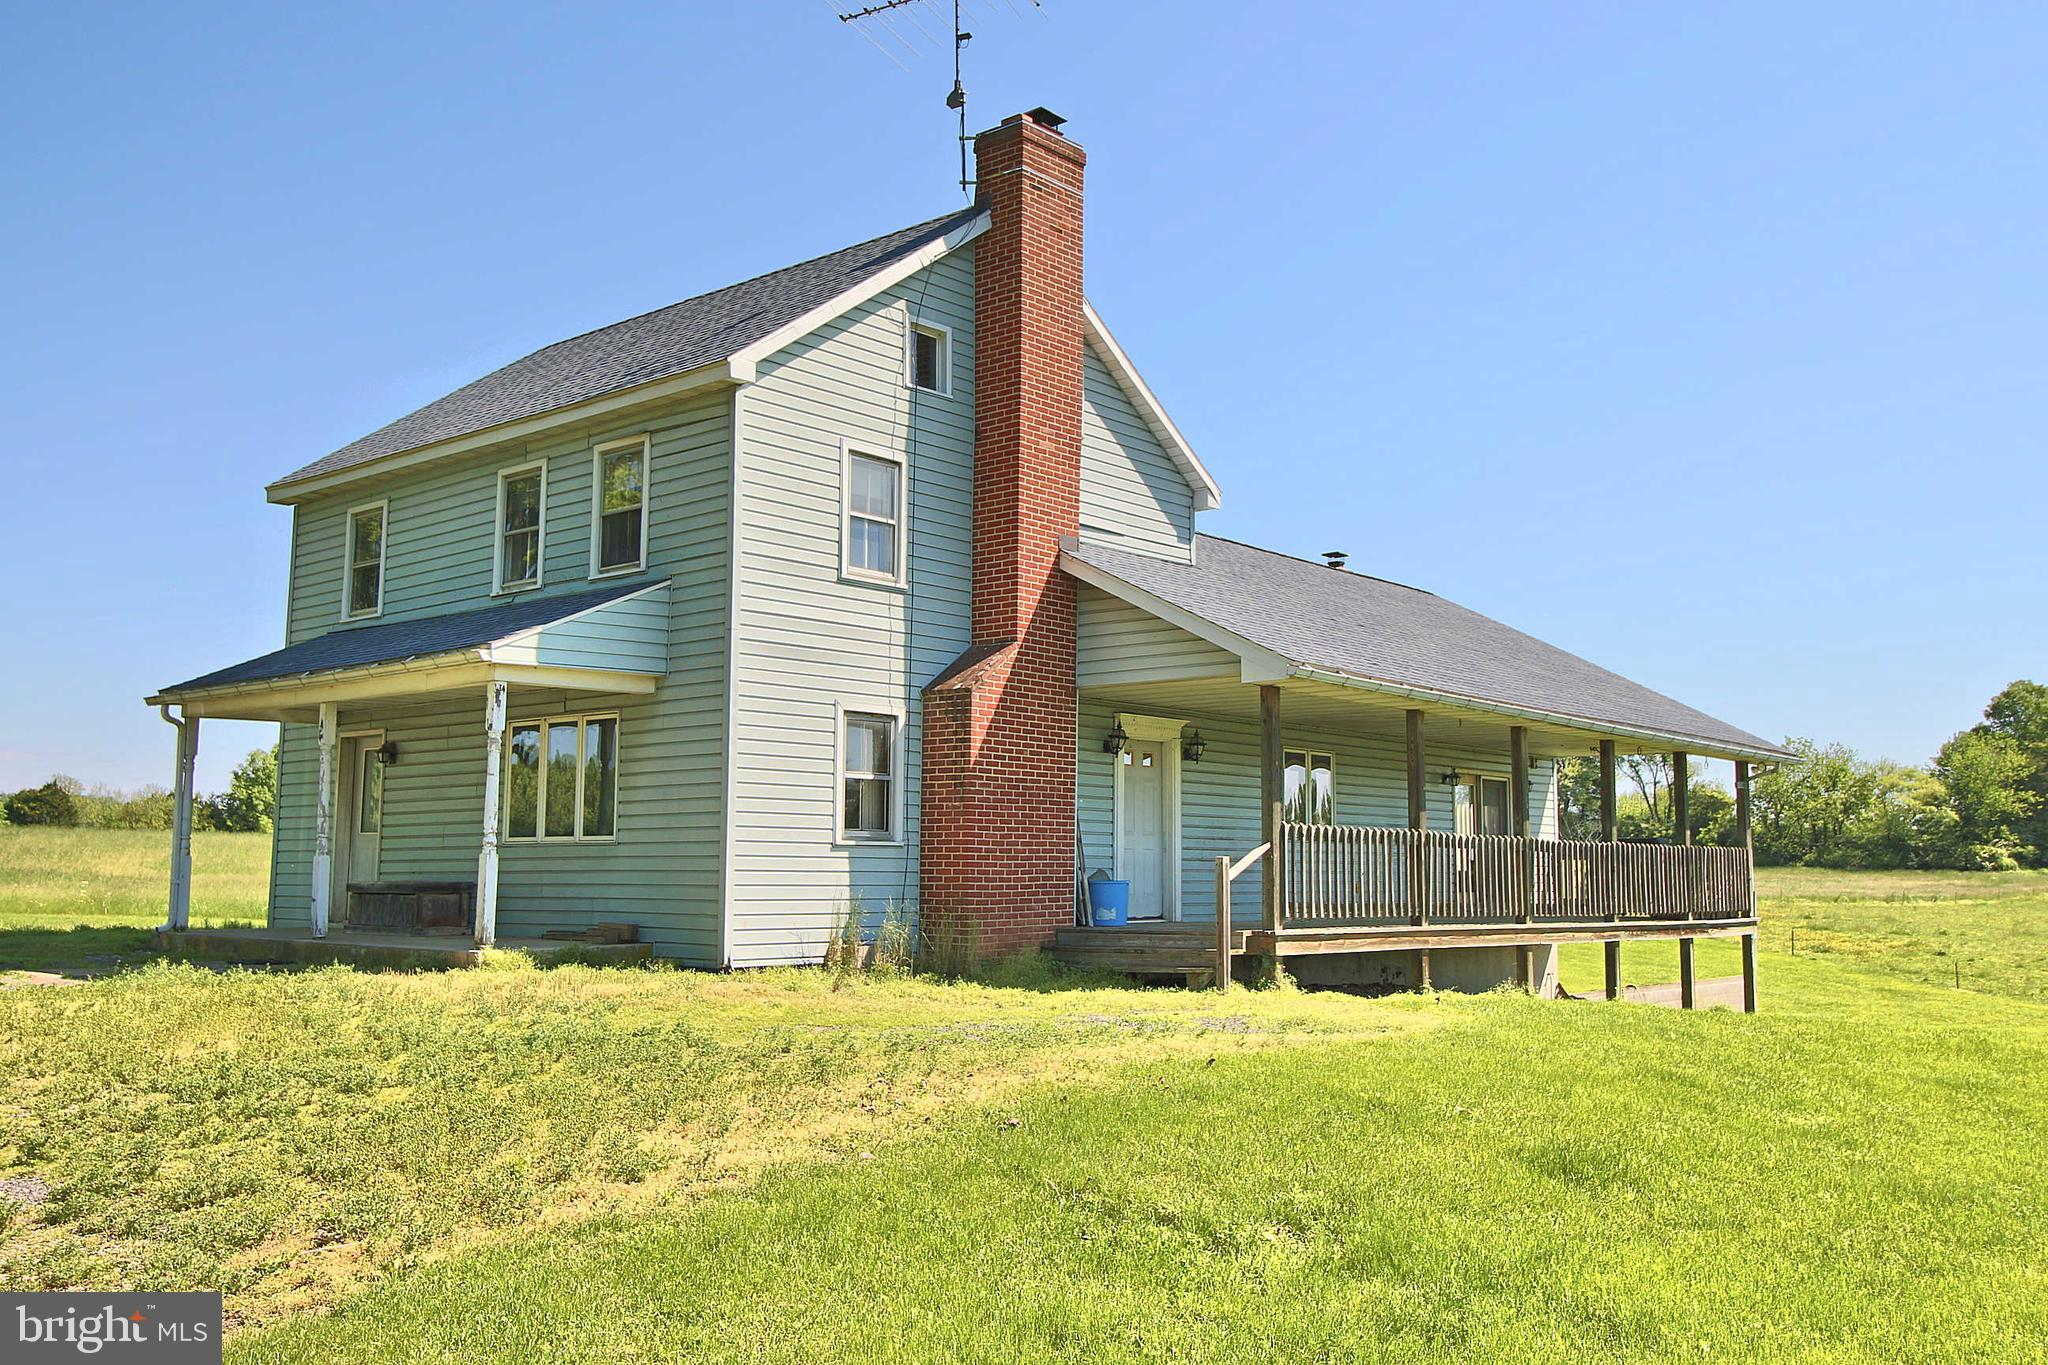 1079 TURKEY PIT ROAD, NEW OXFORD, PA 17350